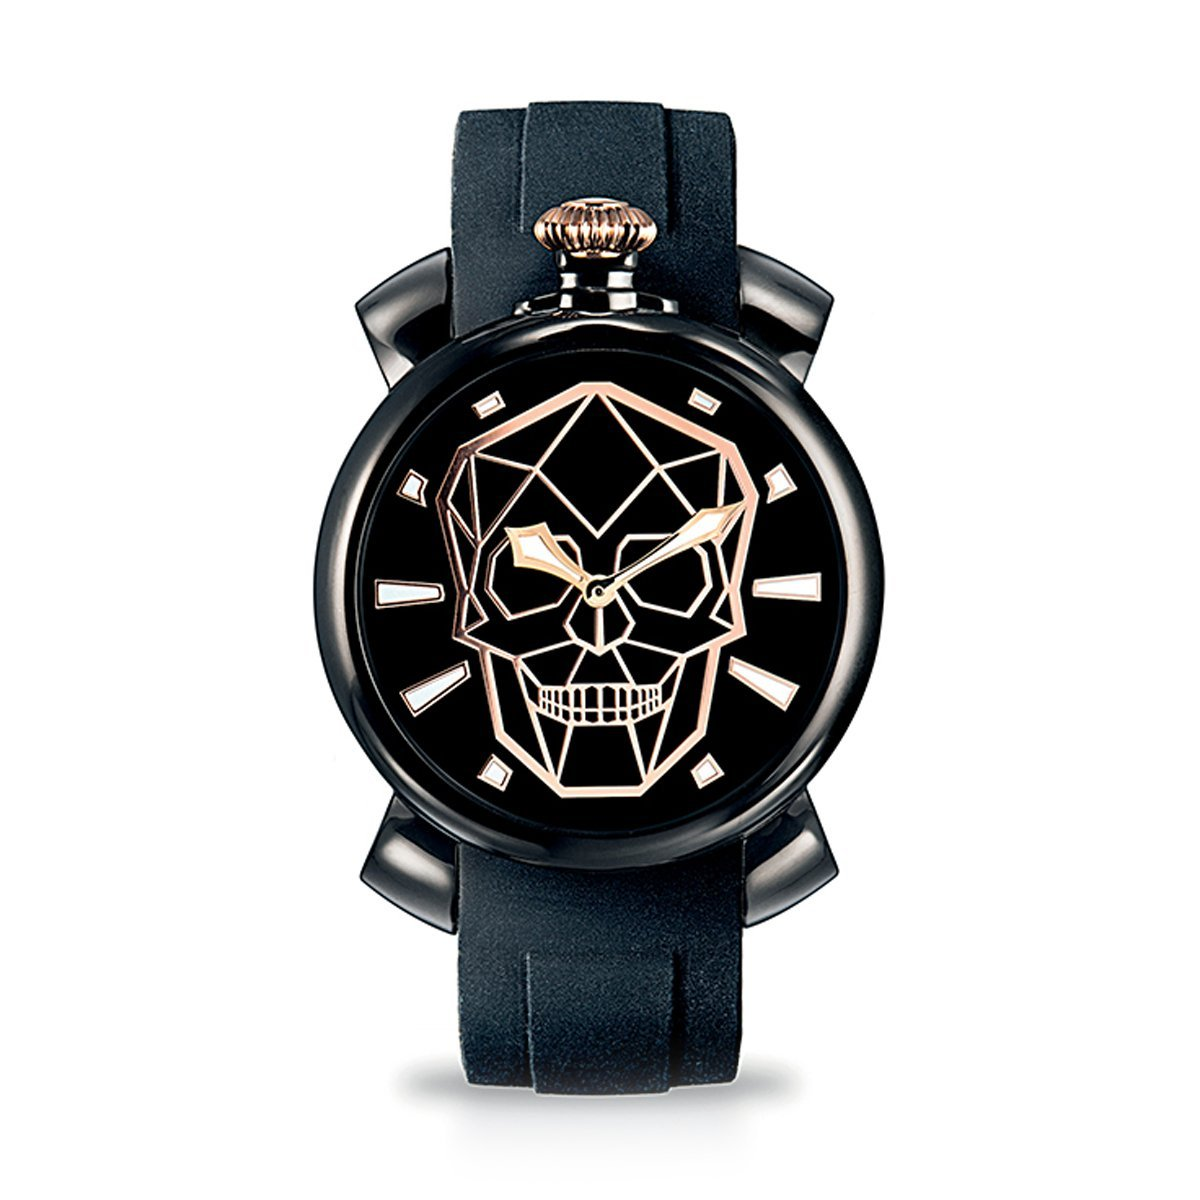 Gaga Milano Slim 46 Bionic Skull Black PVD - Watches & Crystals